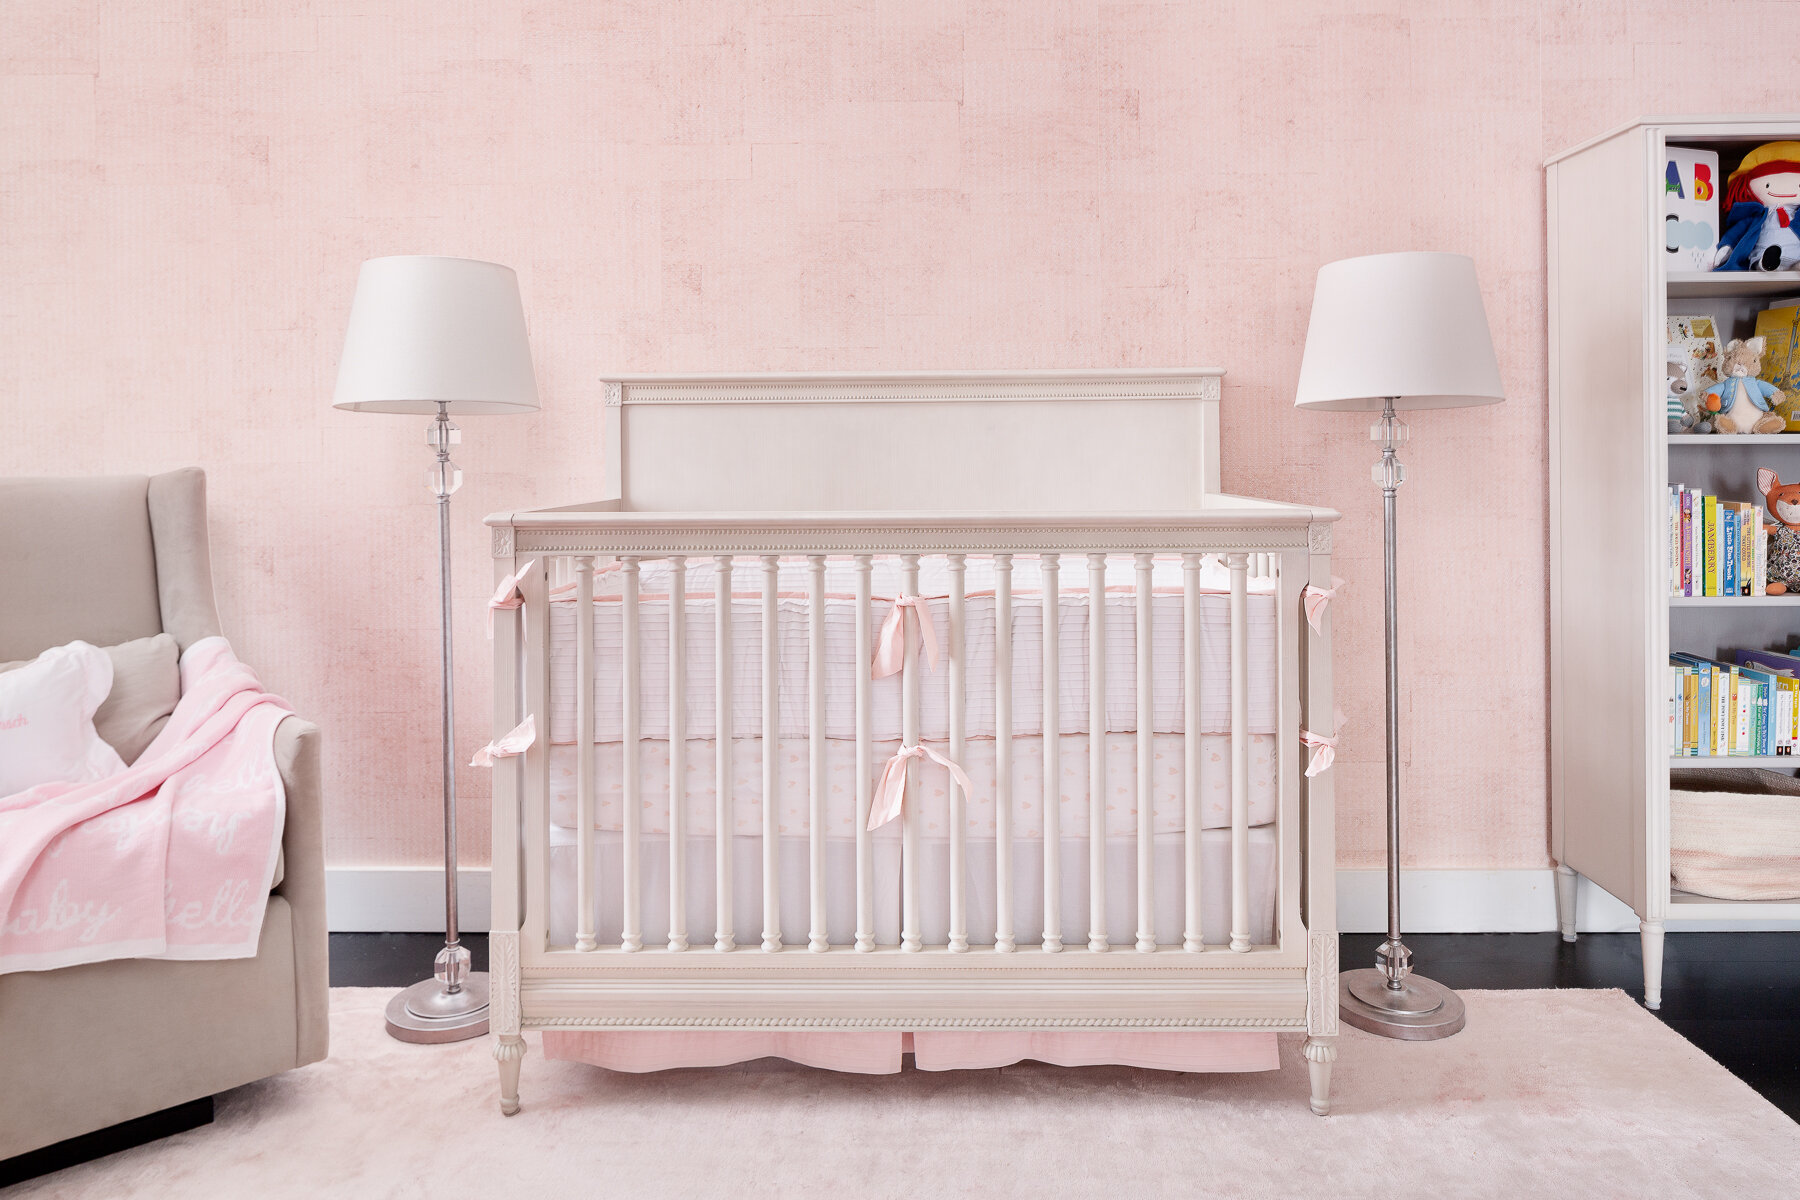 And here is the nursery for their first born baby girl. She is as delicate and the real jewel in this room. The beautiful texturral wallpaper gives a hand plastered background to the room. This room was hufe for a nursery and we made it cozy by flanking the crib by two floor lamps and selecting a crib with a headdboard. The details of the beautifully crafted crib and its wormanship complemented by the wallpaper and the pintucked detail on bumper, all create a sophisticated collected room.